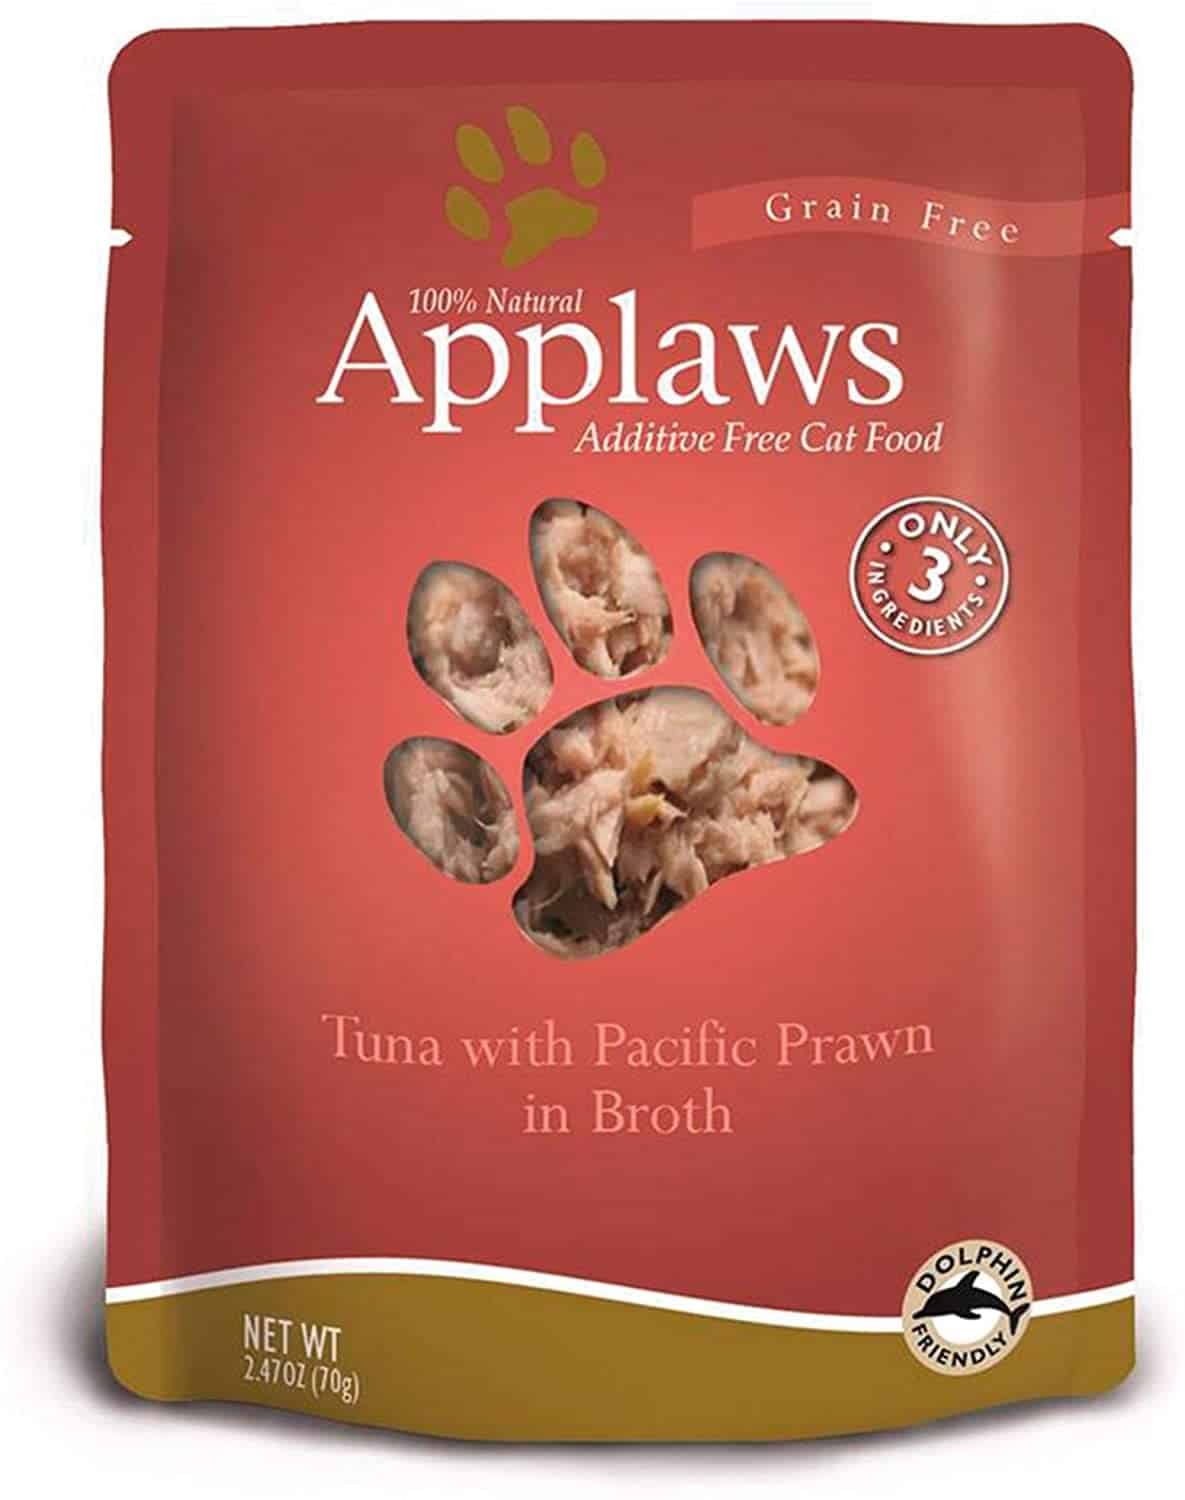 2020 Applaws Cat Food Review: Naturally Nutritious Cat Food 7